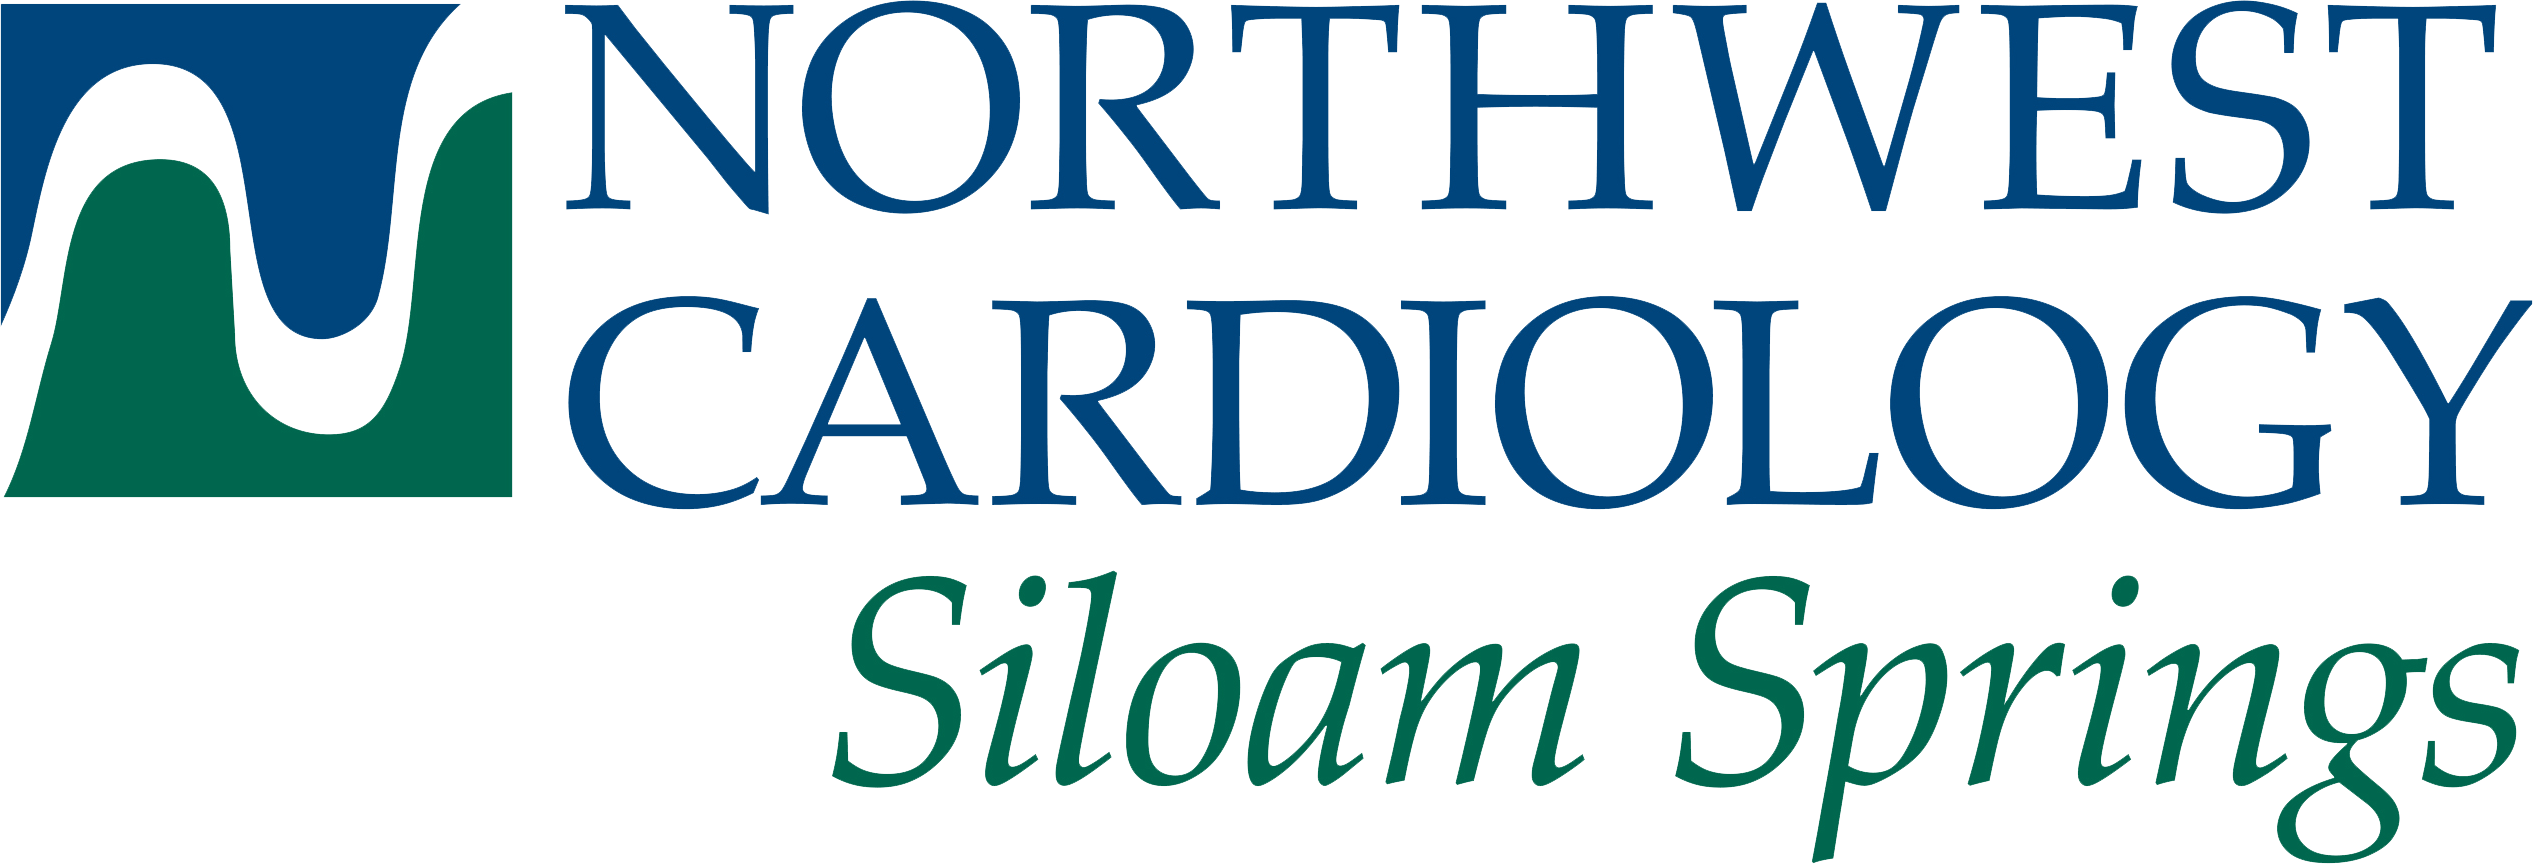 Northwest Cardiology Siloam Springs